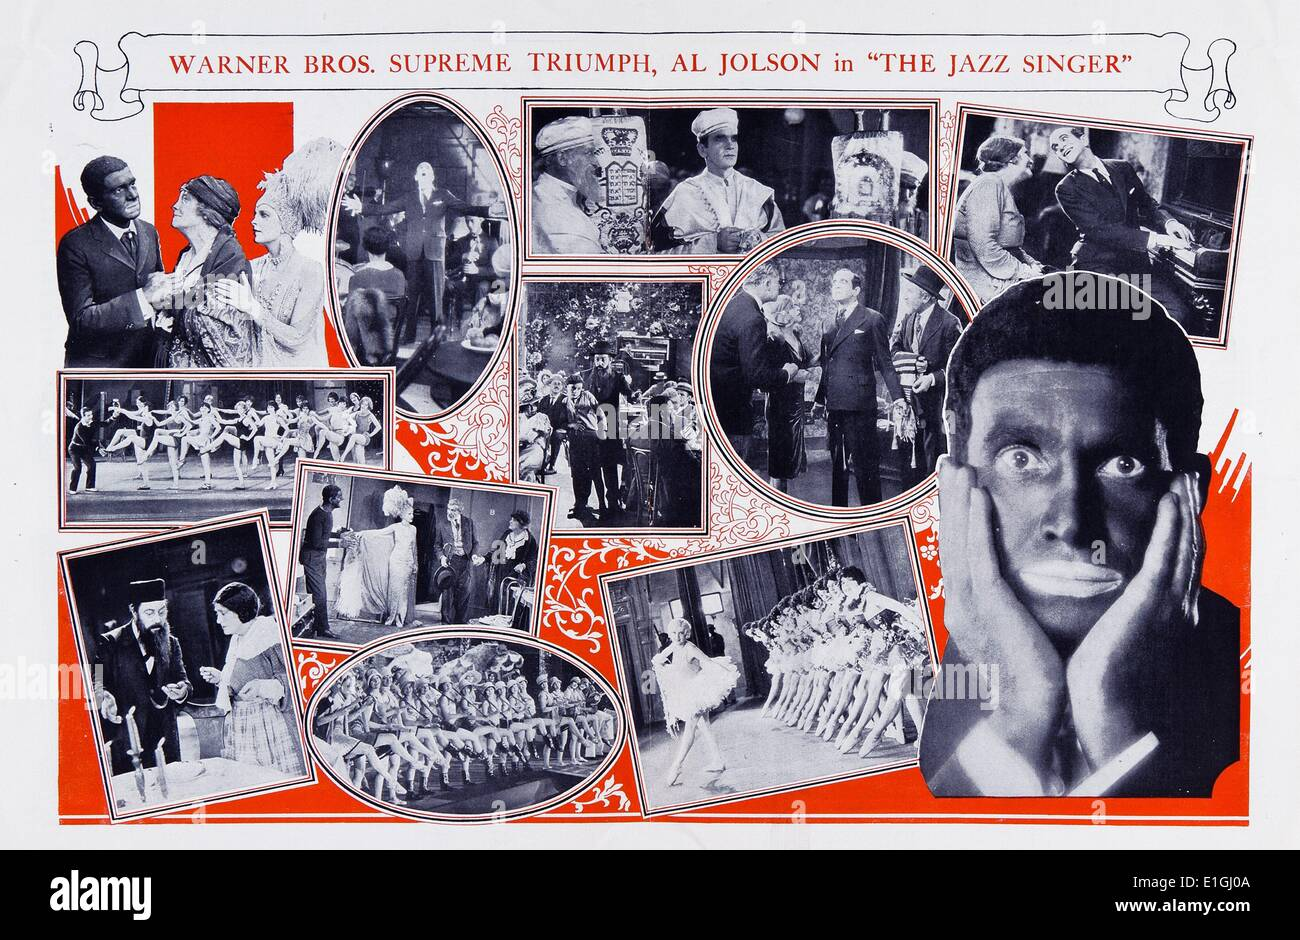 Al Jolson in 'The Jazz Singer, a 1927 American musical film. - Stock Image